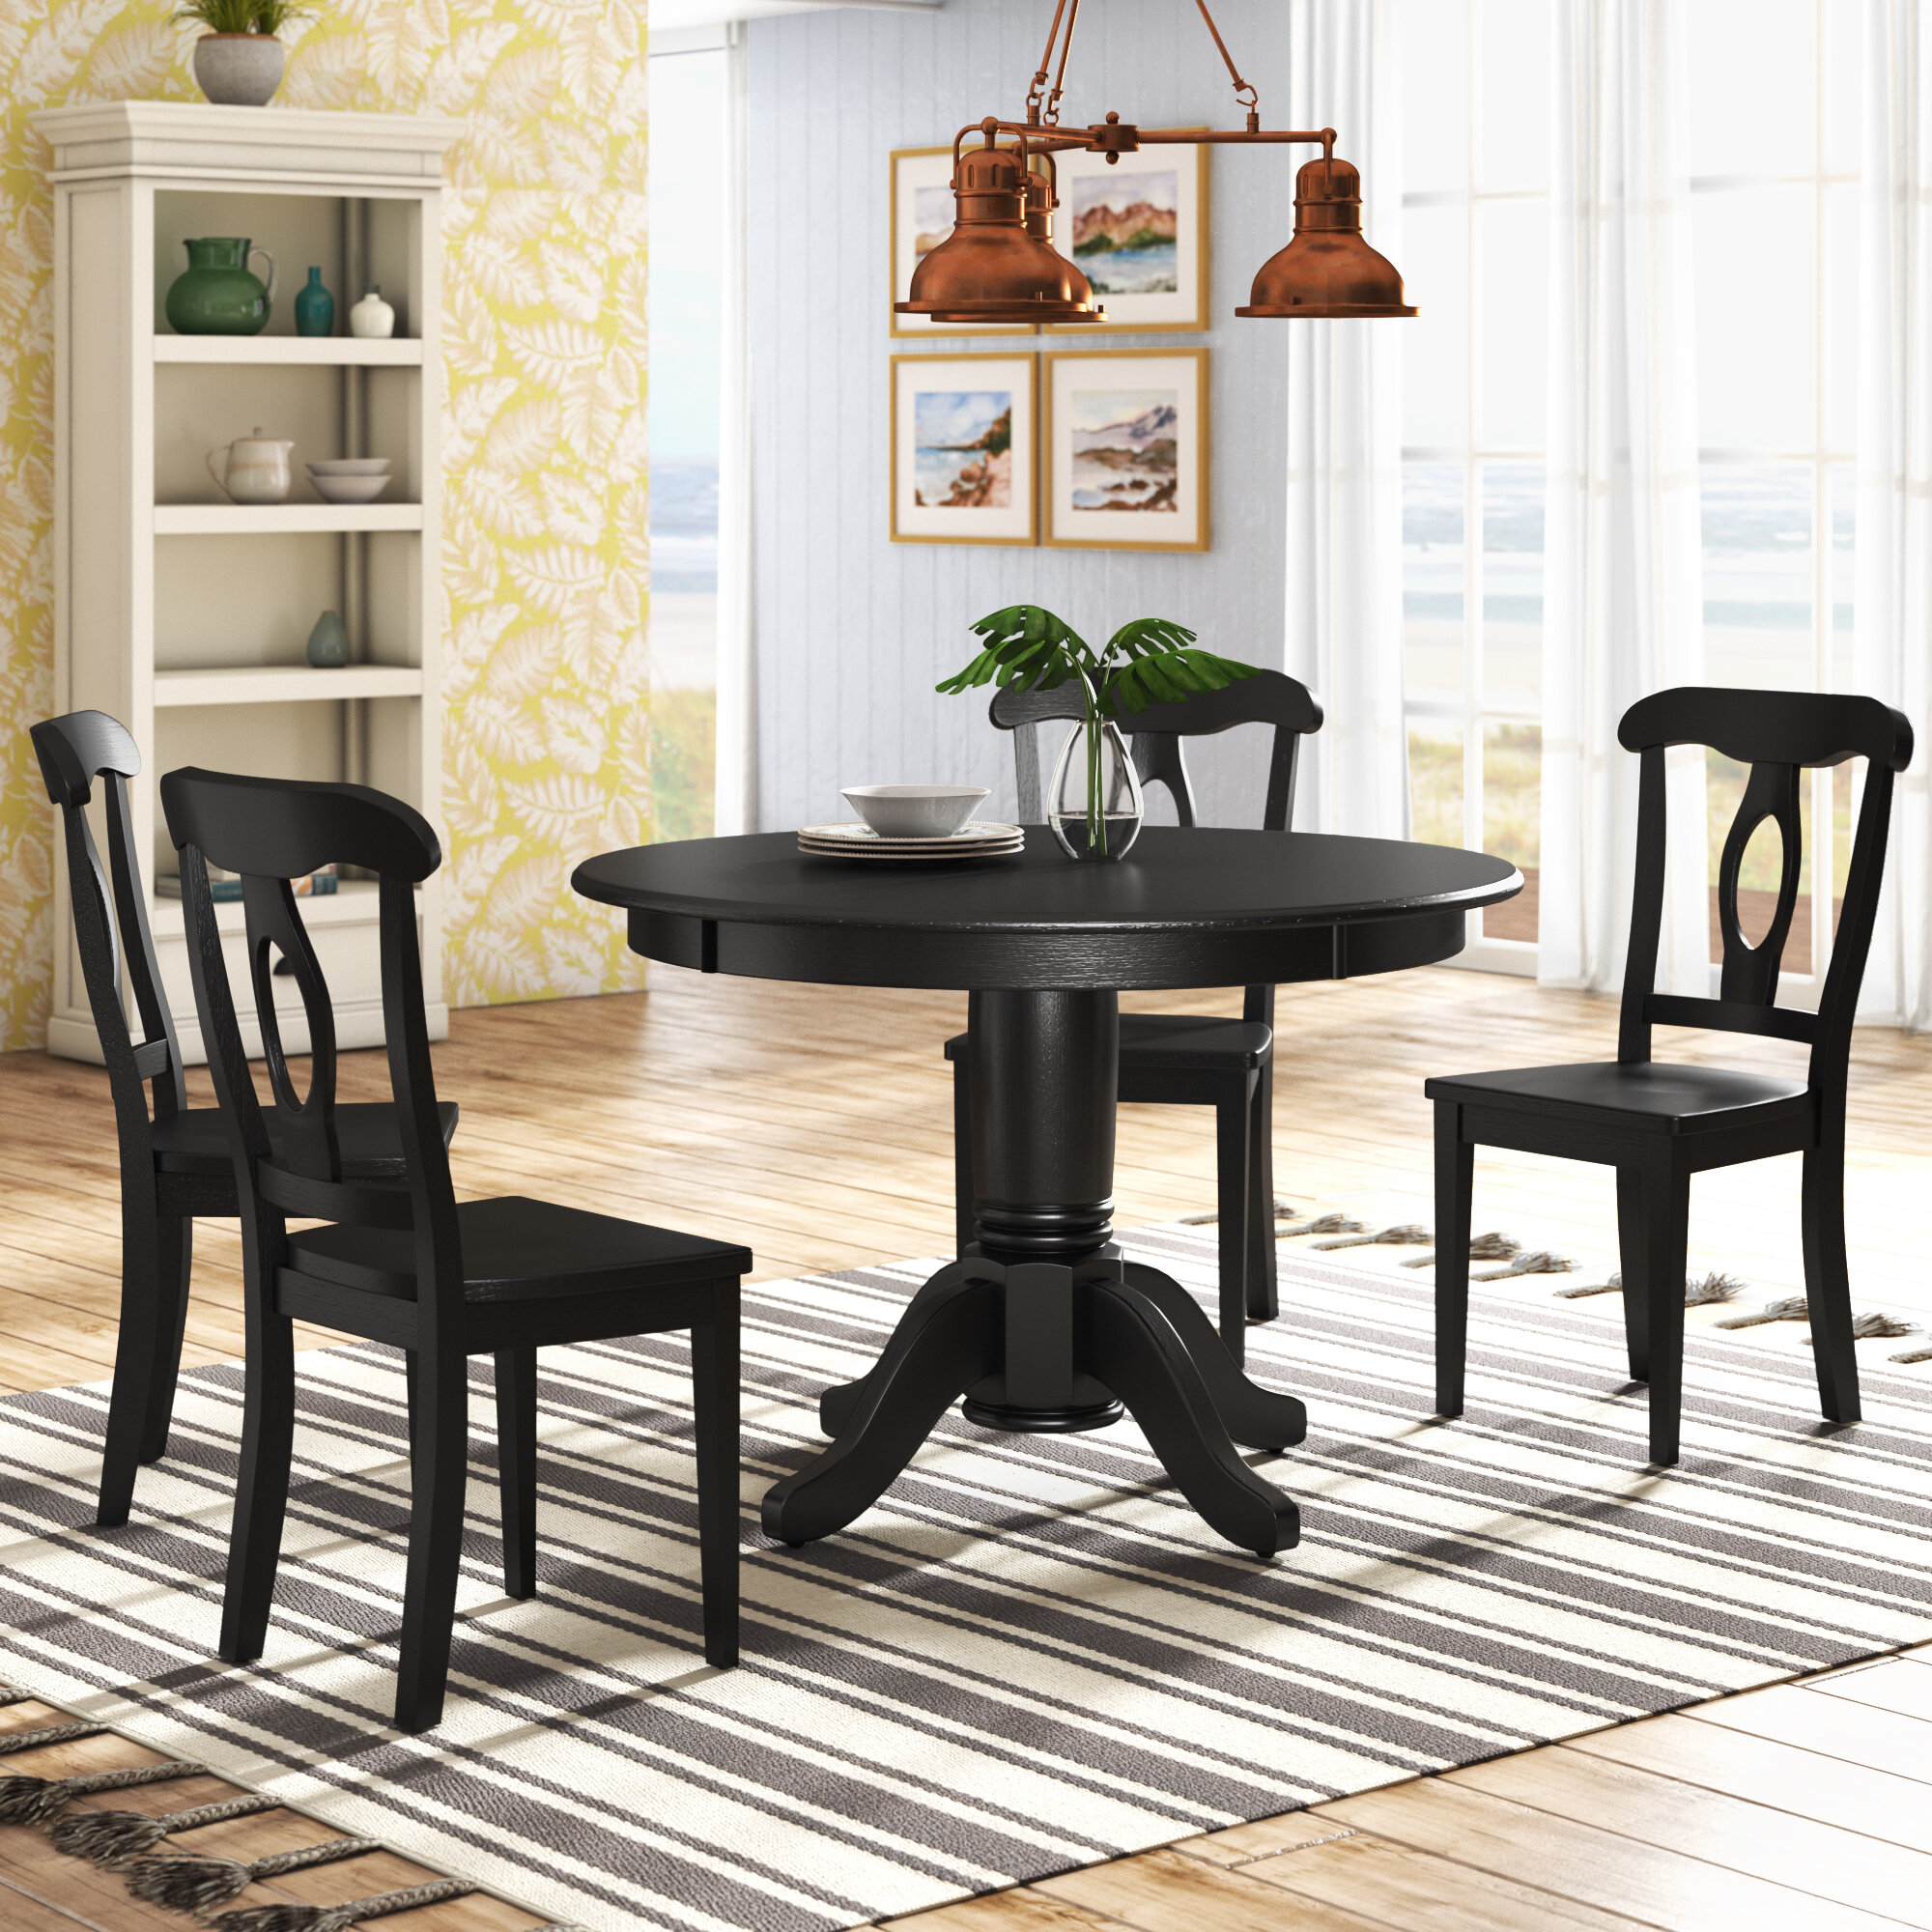 Beachcrest Home Gaskell 4 - Person Rubberwood Solid Wood Dining